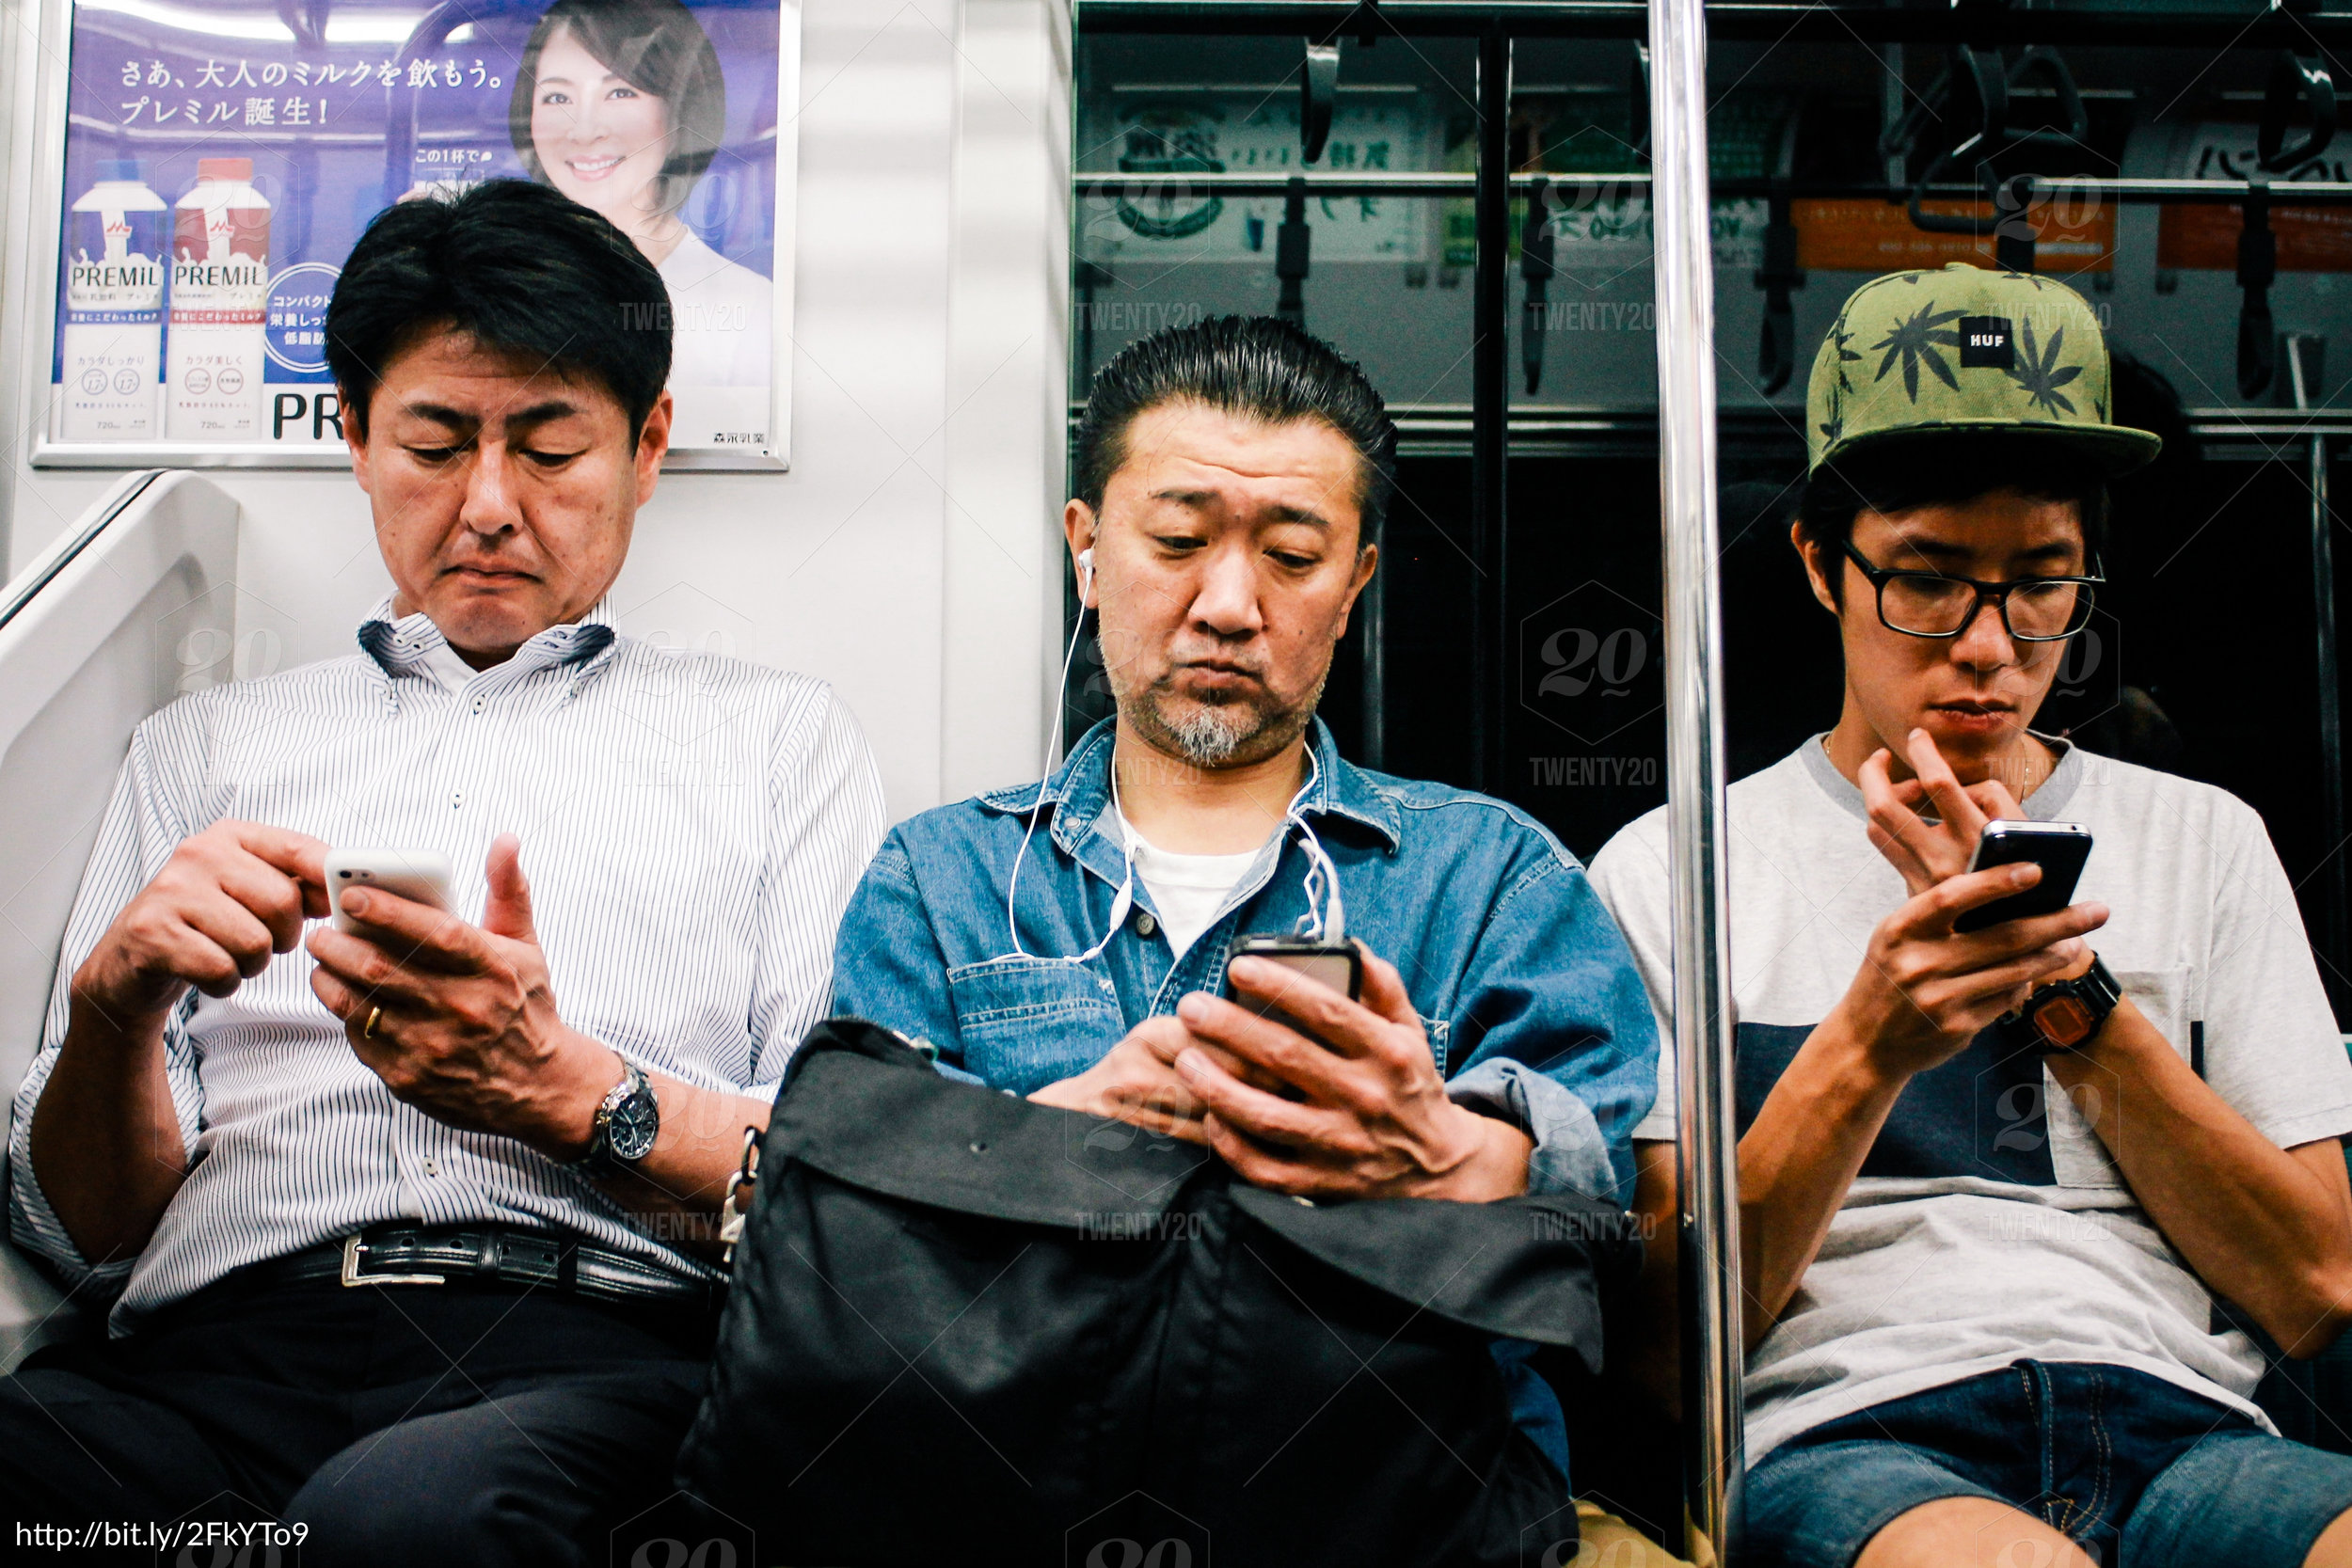 Case and point. An advertiser paid to put their ad in a bus and no one is looking at it. Every single person is on their phone. Probably being served an ad by the competitor for  much   less